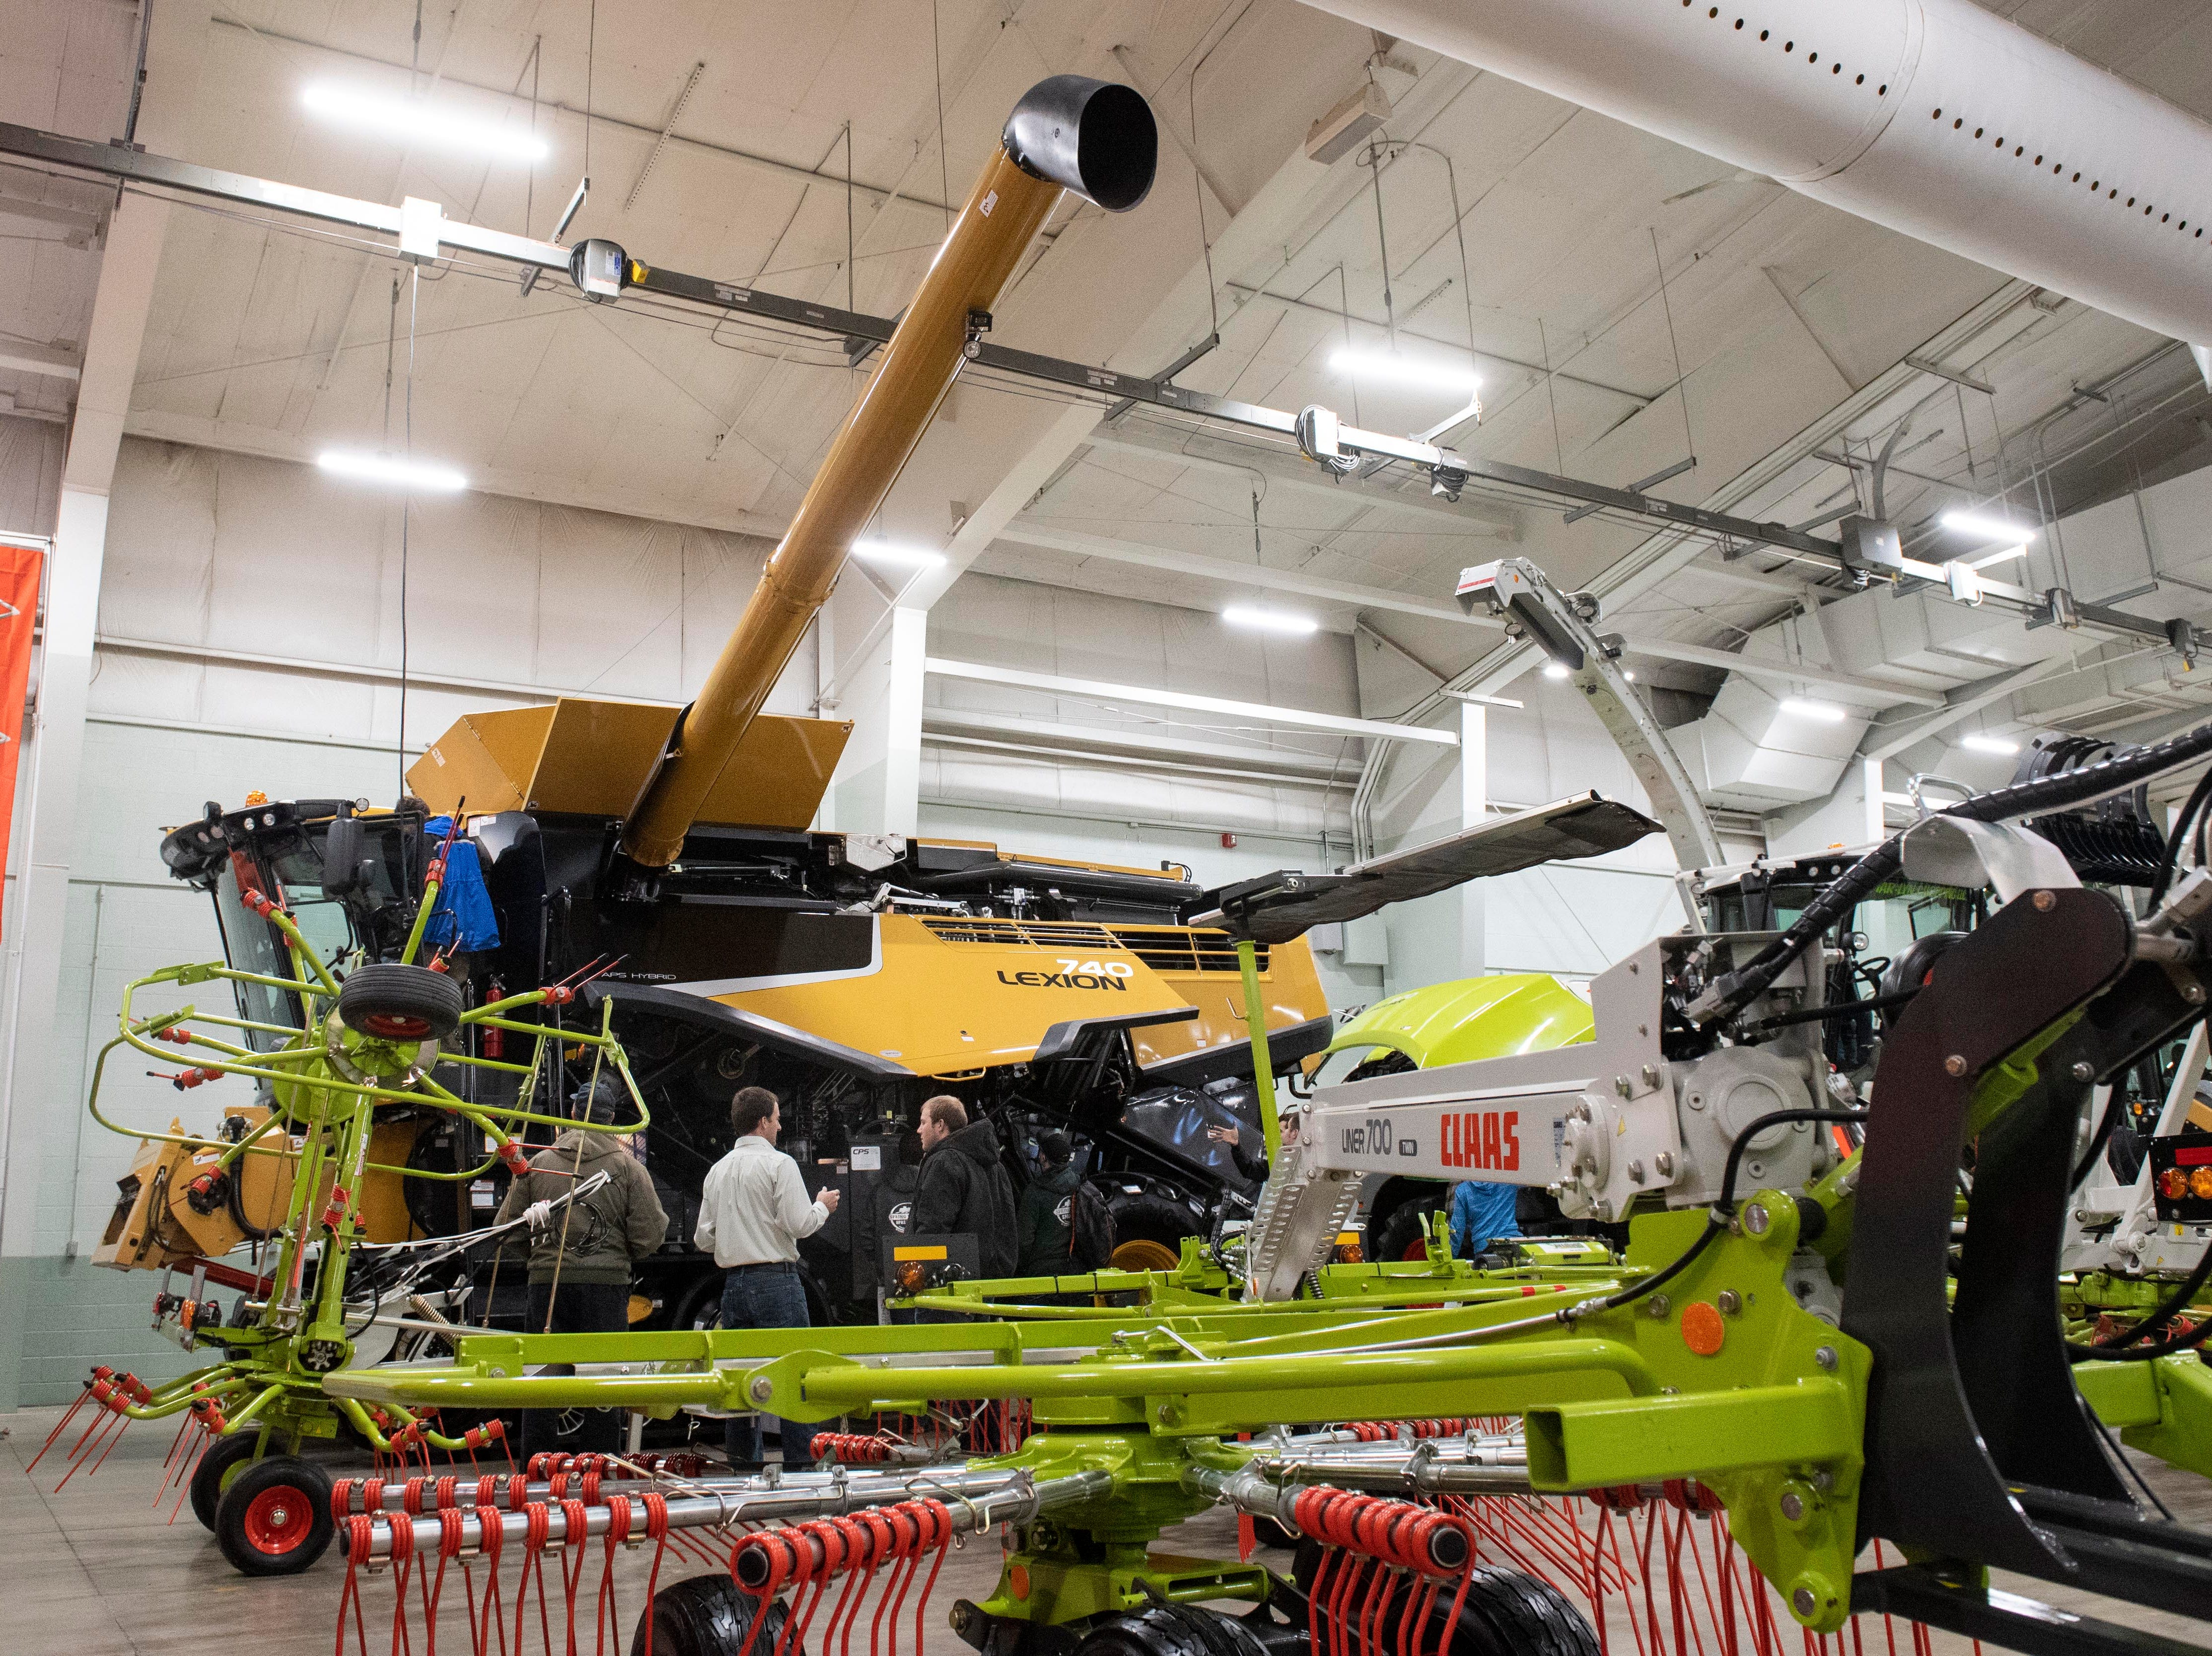 From harvesters to hay bailers, nearly every piece of agricultural equipment sits on display for potential buyers to check out, Tuesday, Jan. 8, 2019. The Keystone Farm Show has nearly 420 vendors and is expected to bring up to 15,000 people to the York Expo Center.